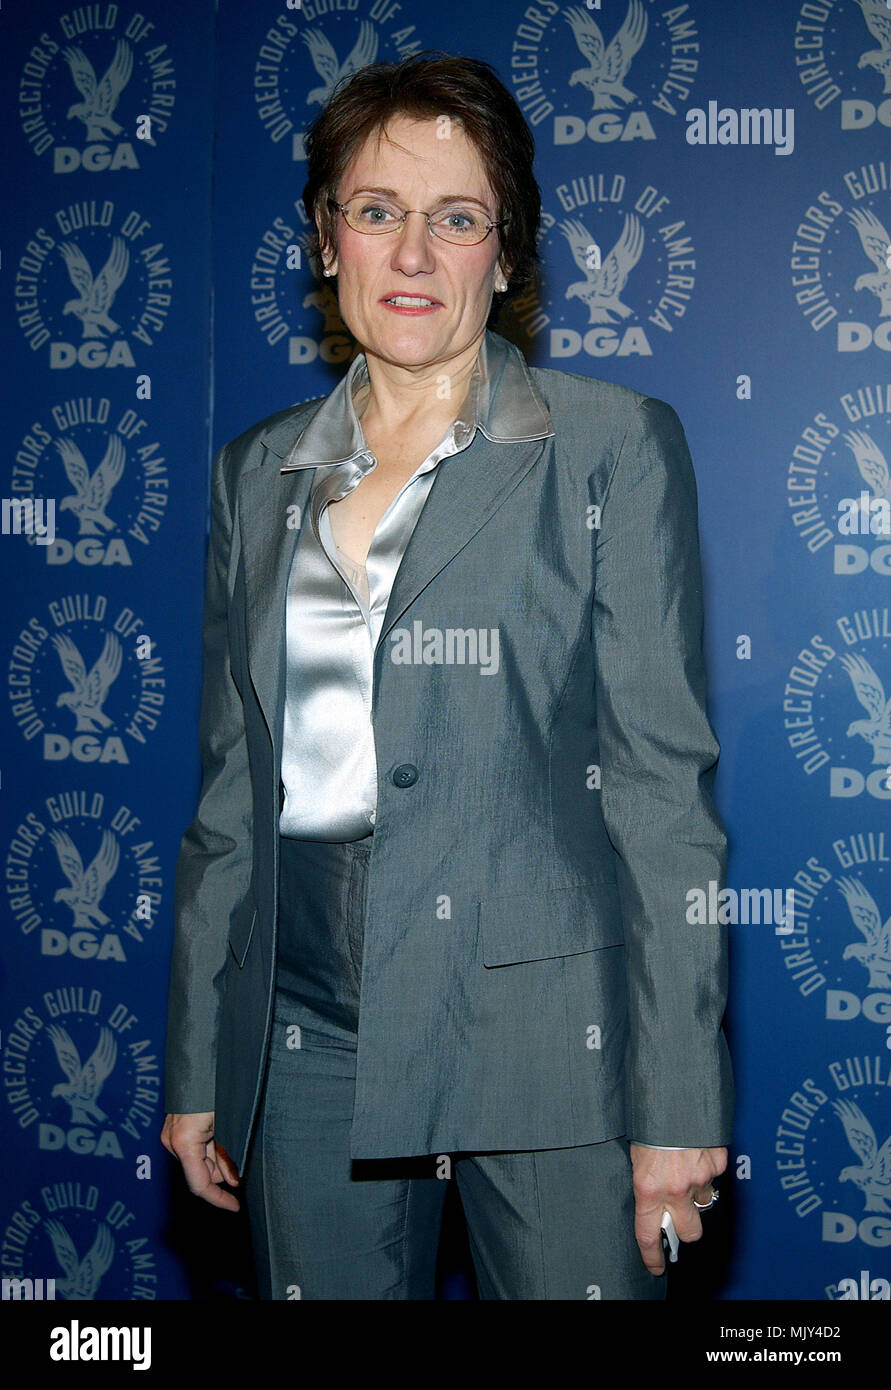 The president of th Director Guild of America, Martha Coolidge  Announce DGA nominees for Outstanding Directorial Achievement in Feature Film For 2002 at the DGA in Los Angeles. January 21, 2003.          -            CoolidgeMartha_DGAann909.jpgCoolidgeMartha_DGAann909  Event in Hollywood Life - California,  Red Carpet Event, Vertical, USA, Film Industry, Celebrities,  Photography, Bestof, Arts Culture and Entertainment, Topix Celebrities fashion /  from the Red Carpet-, one person, Vertical, Best of, Hollywood Life, Event in Hollywood Life - California,  Red Carpet and backstage, USA, Film I - Stock Image